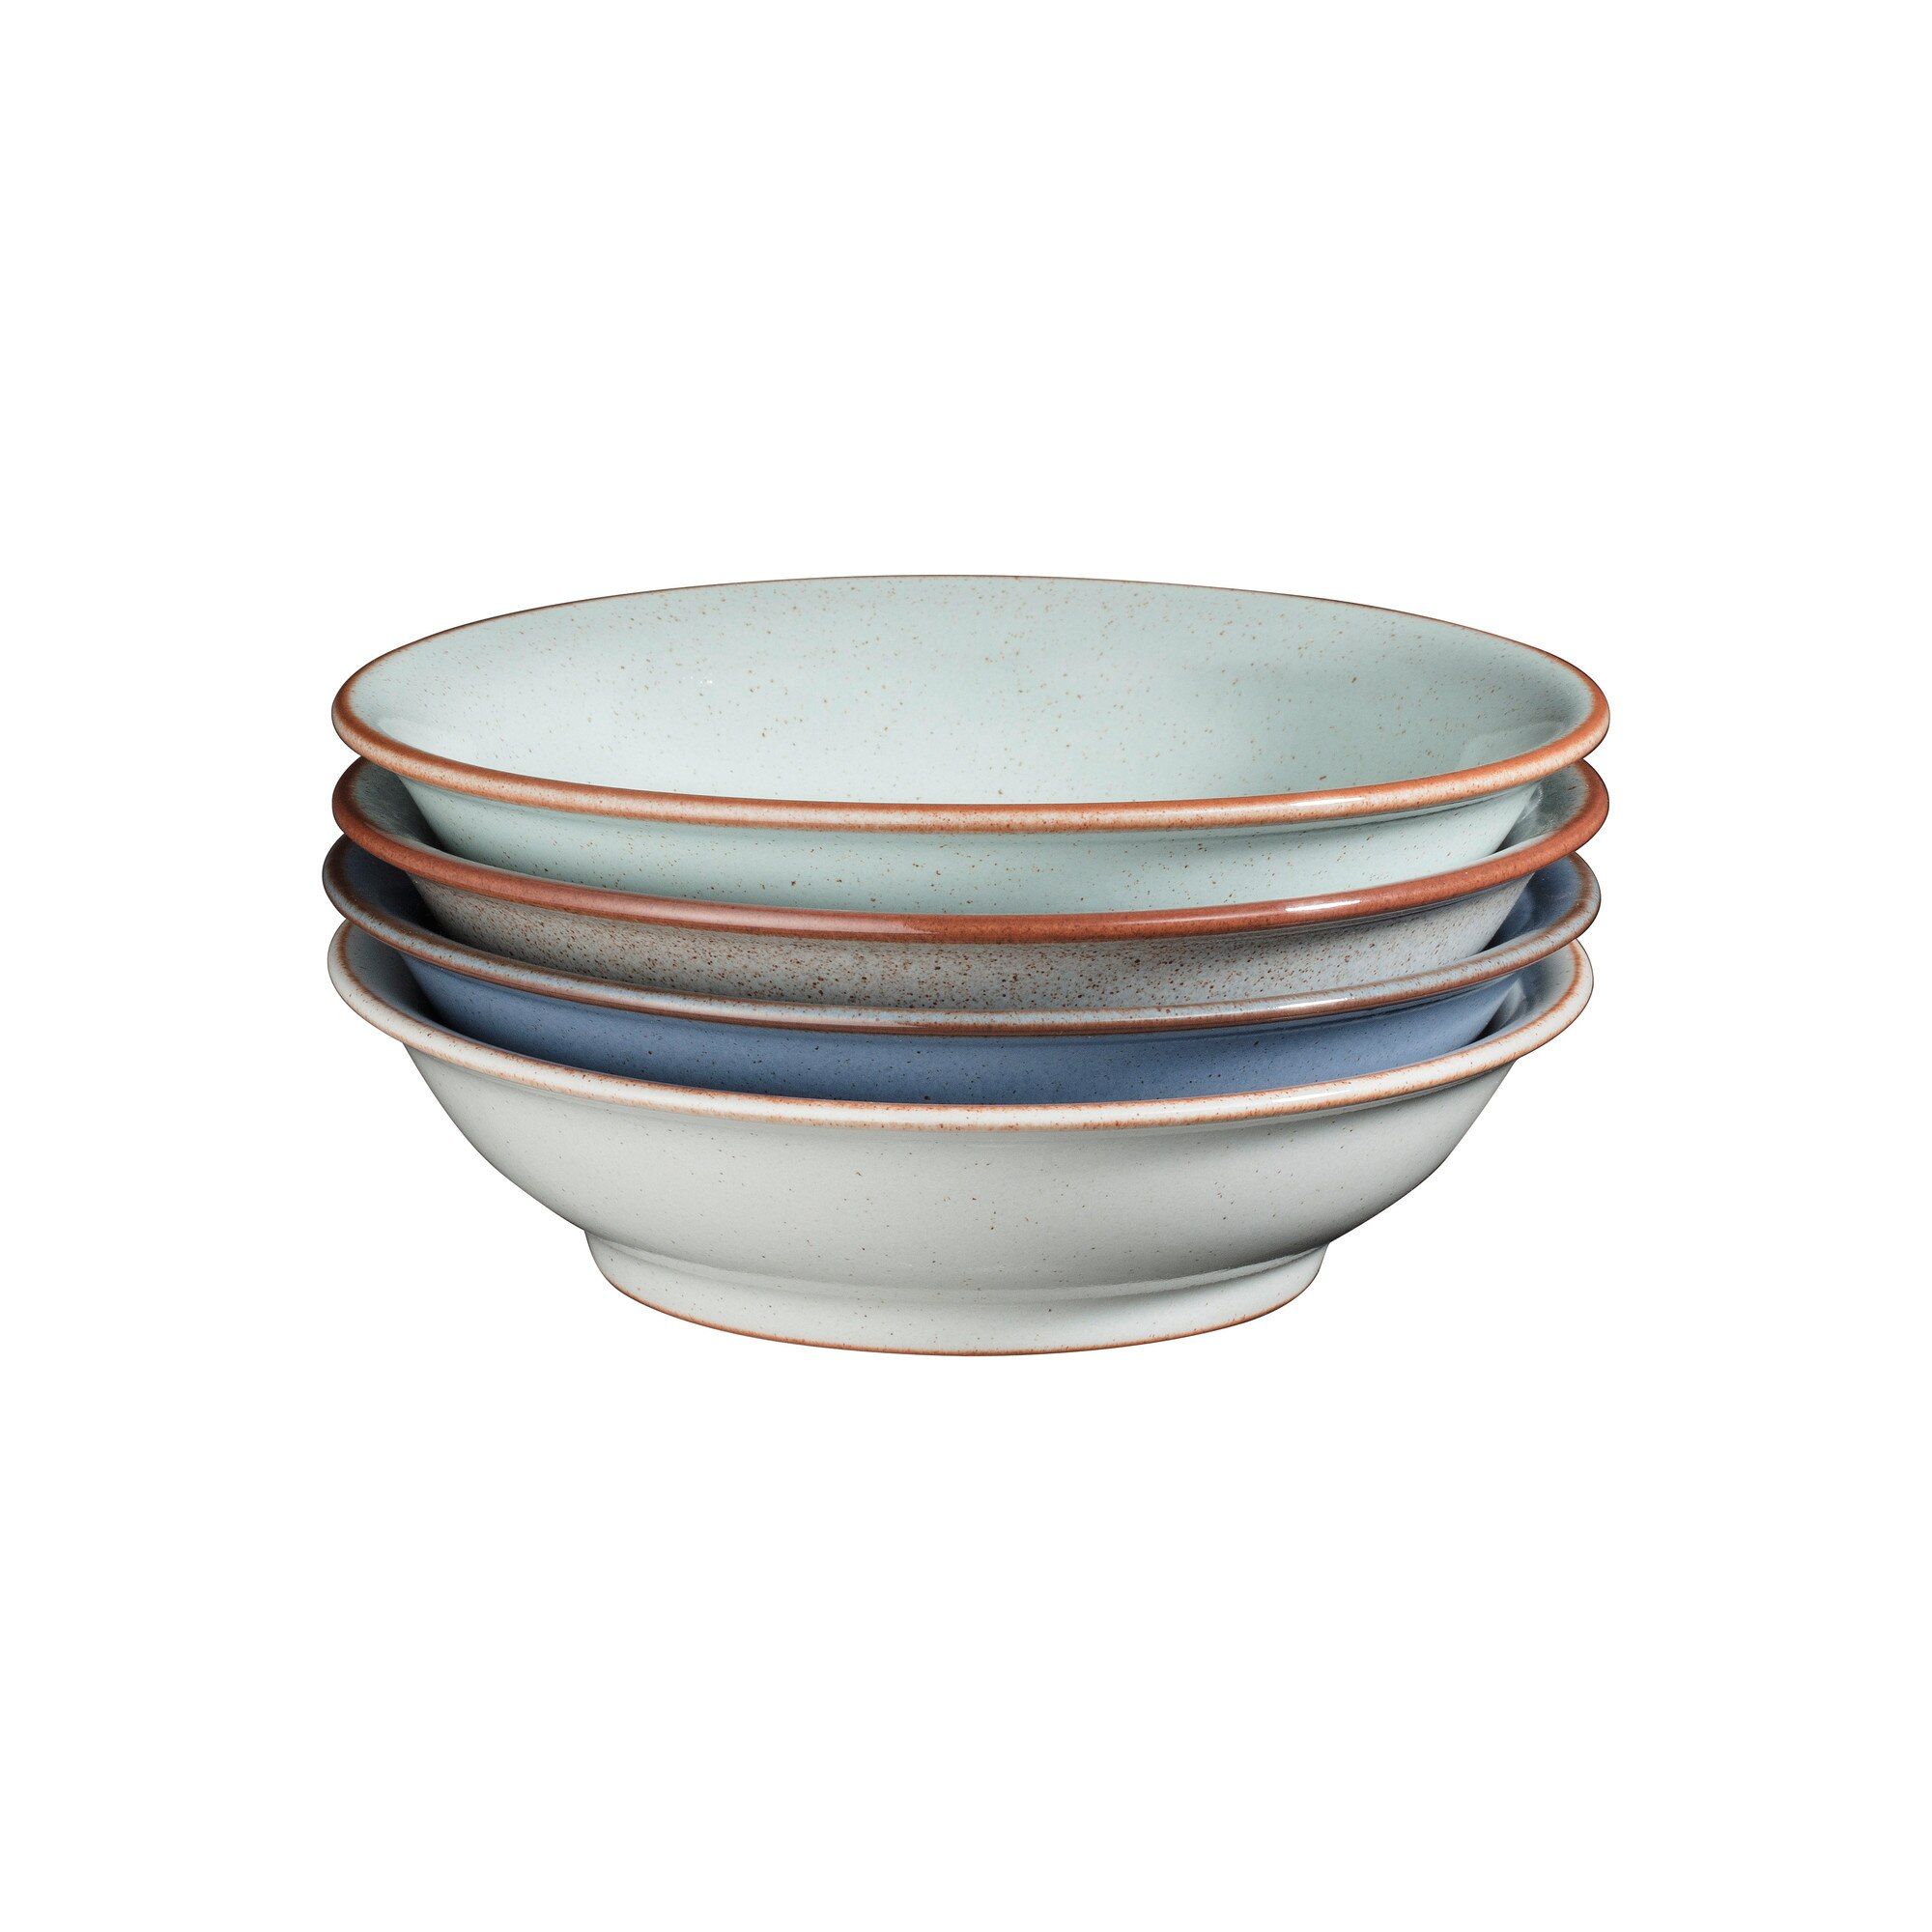 Compare prices for Denby Always Entertaining - The Blue Edit 4 Piece Medium Shallow Bowl Set